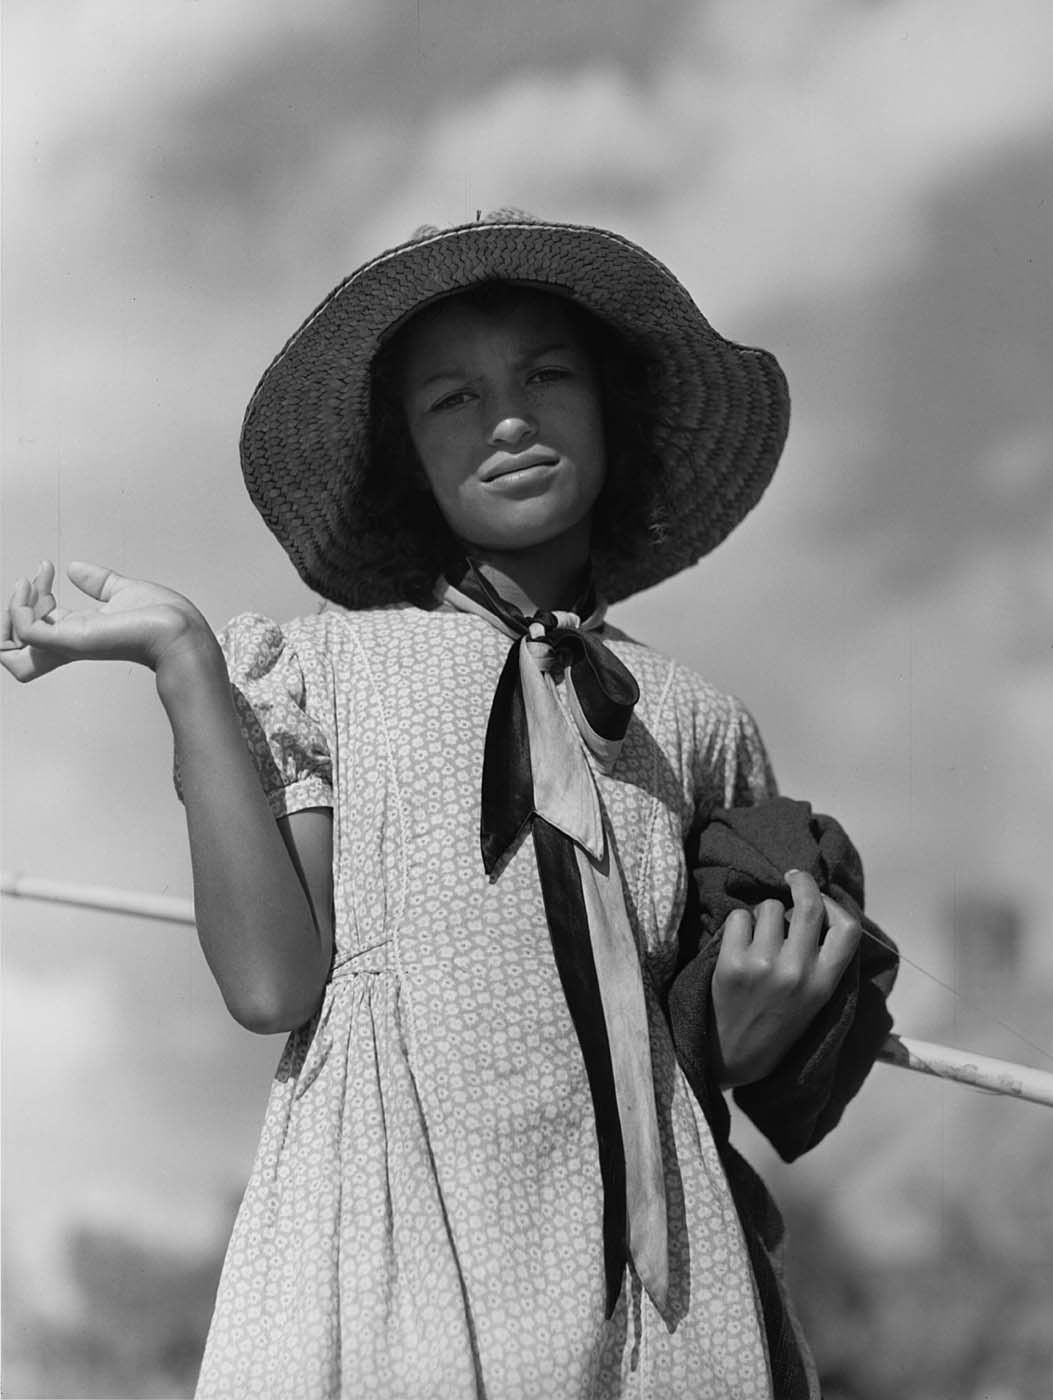 Marion Post Wolcott_Hundred_Heroines_Black_And_White_Photography_Women_In_Photography